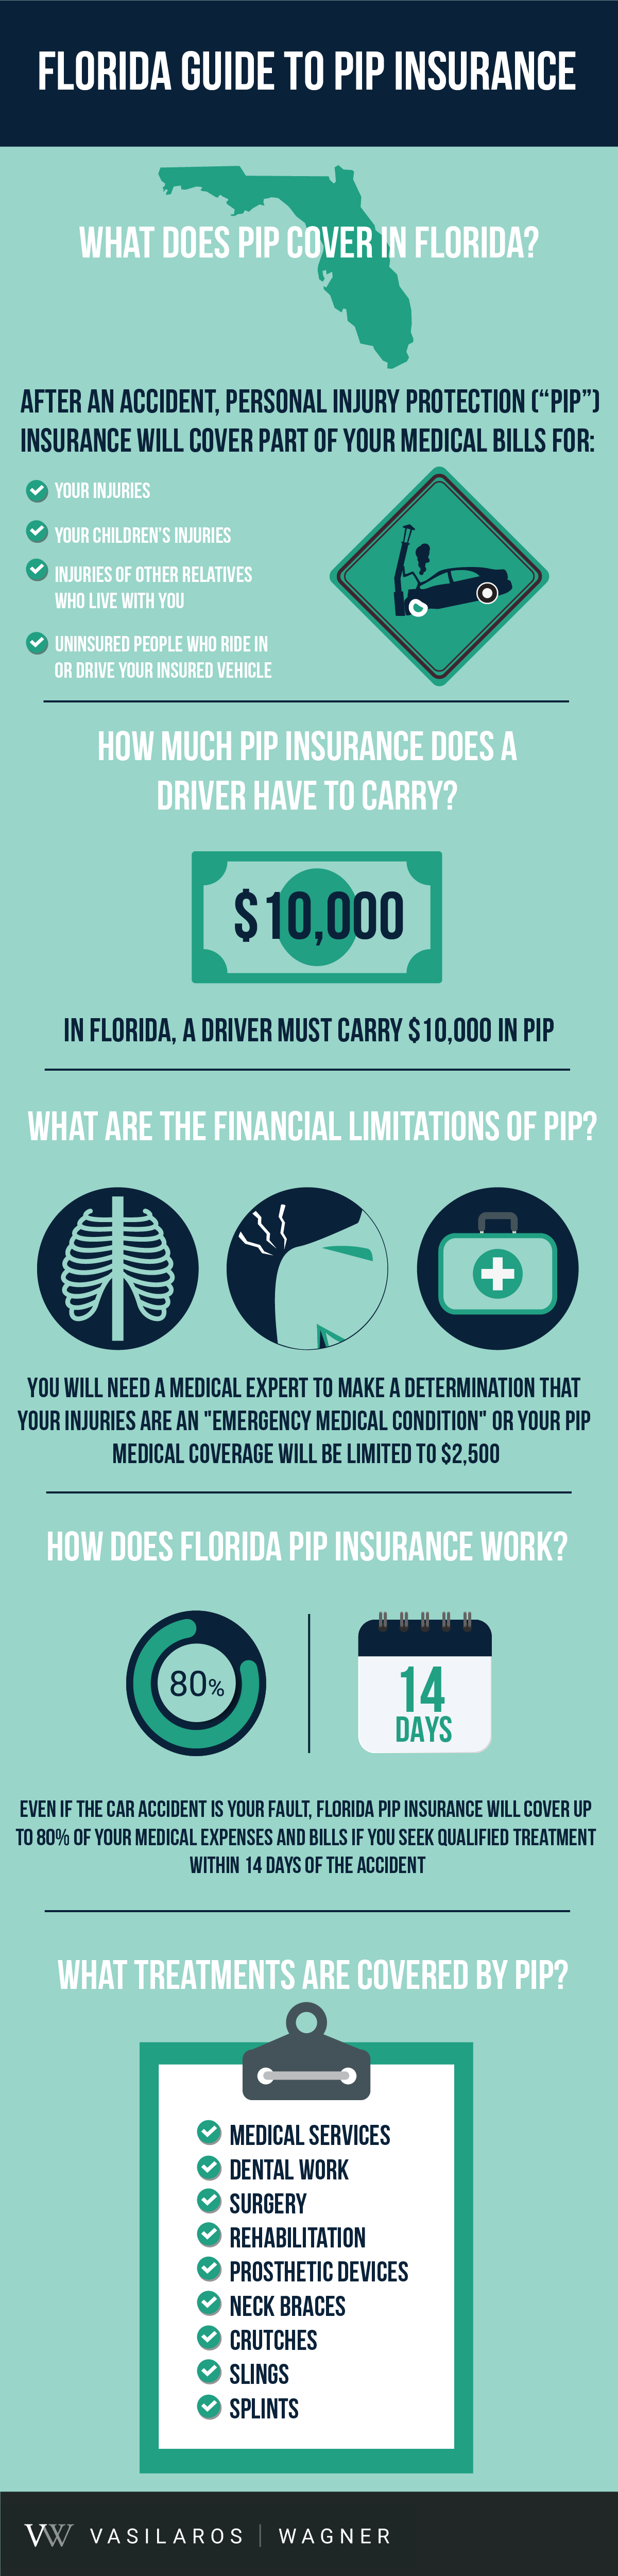 Florida Guide to PIP Insurance Infographic